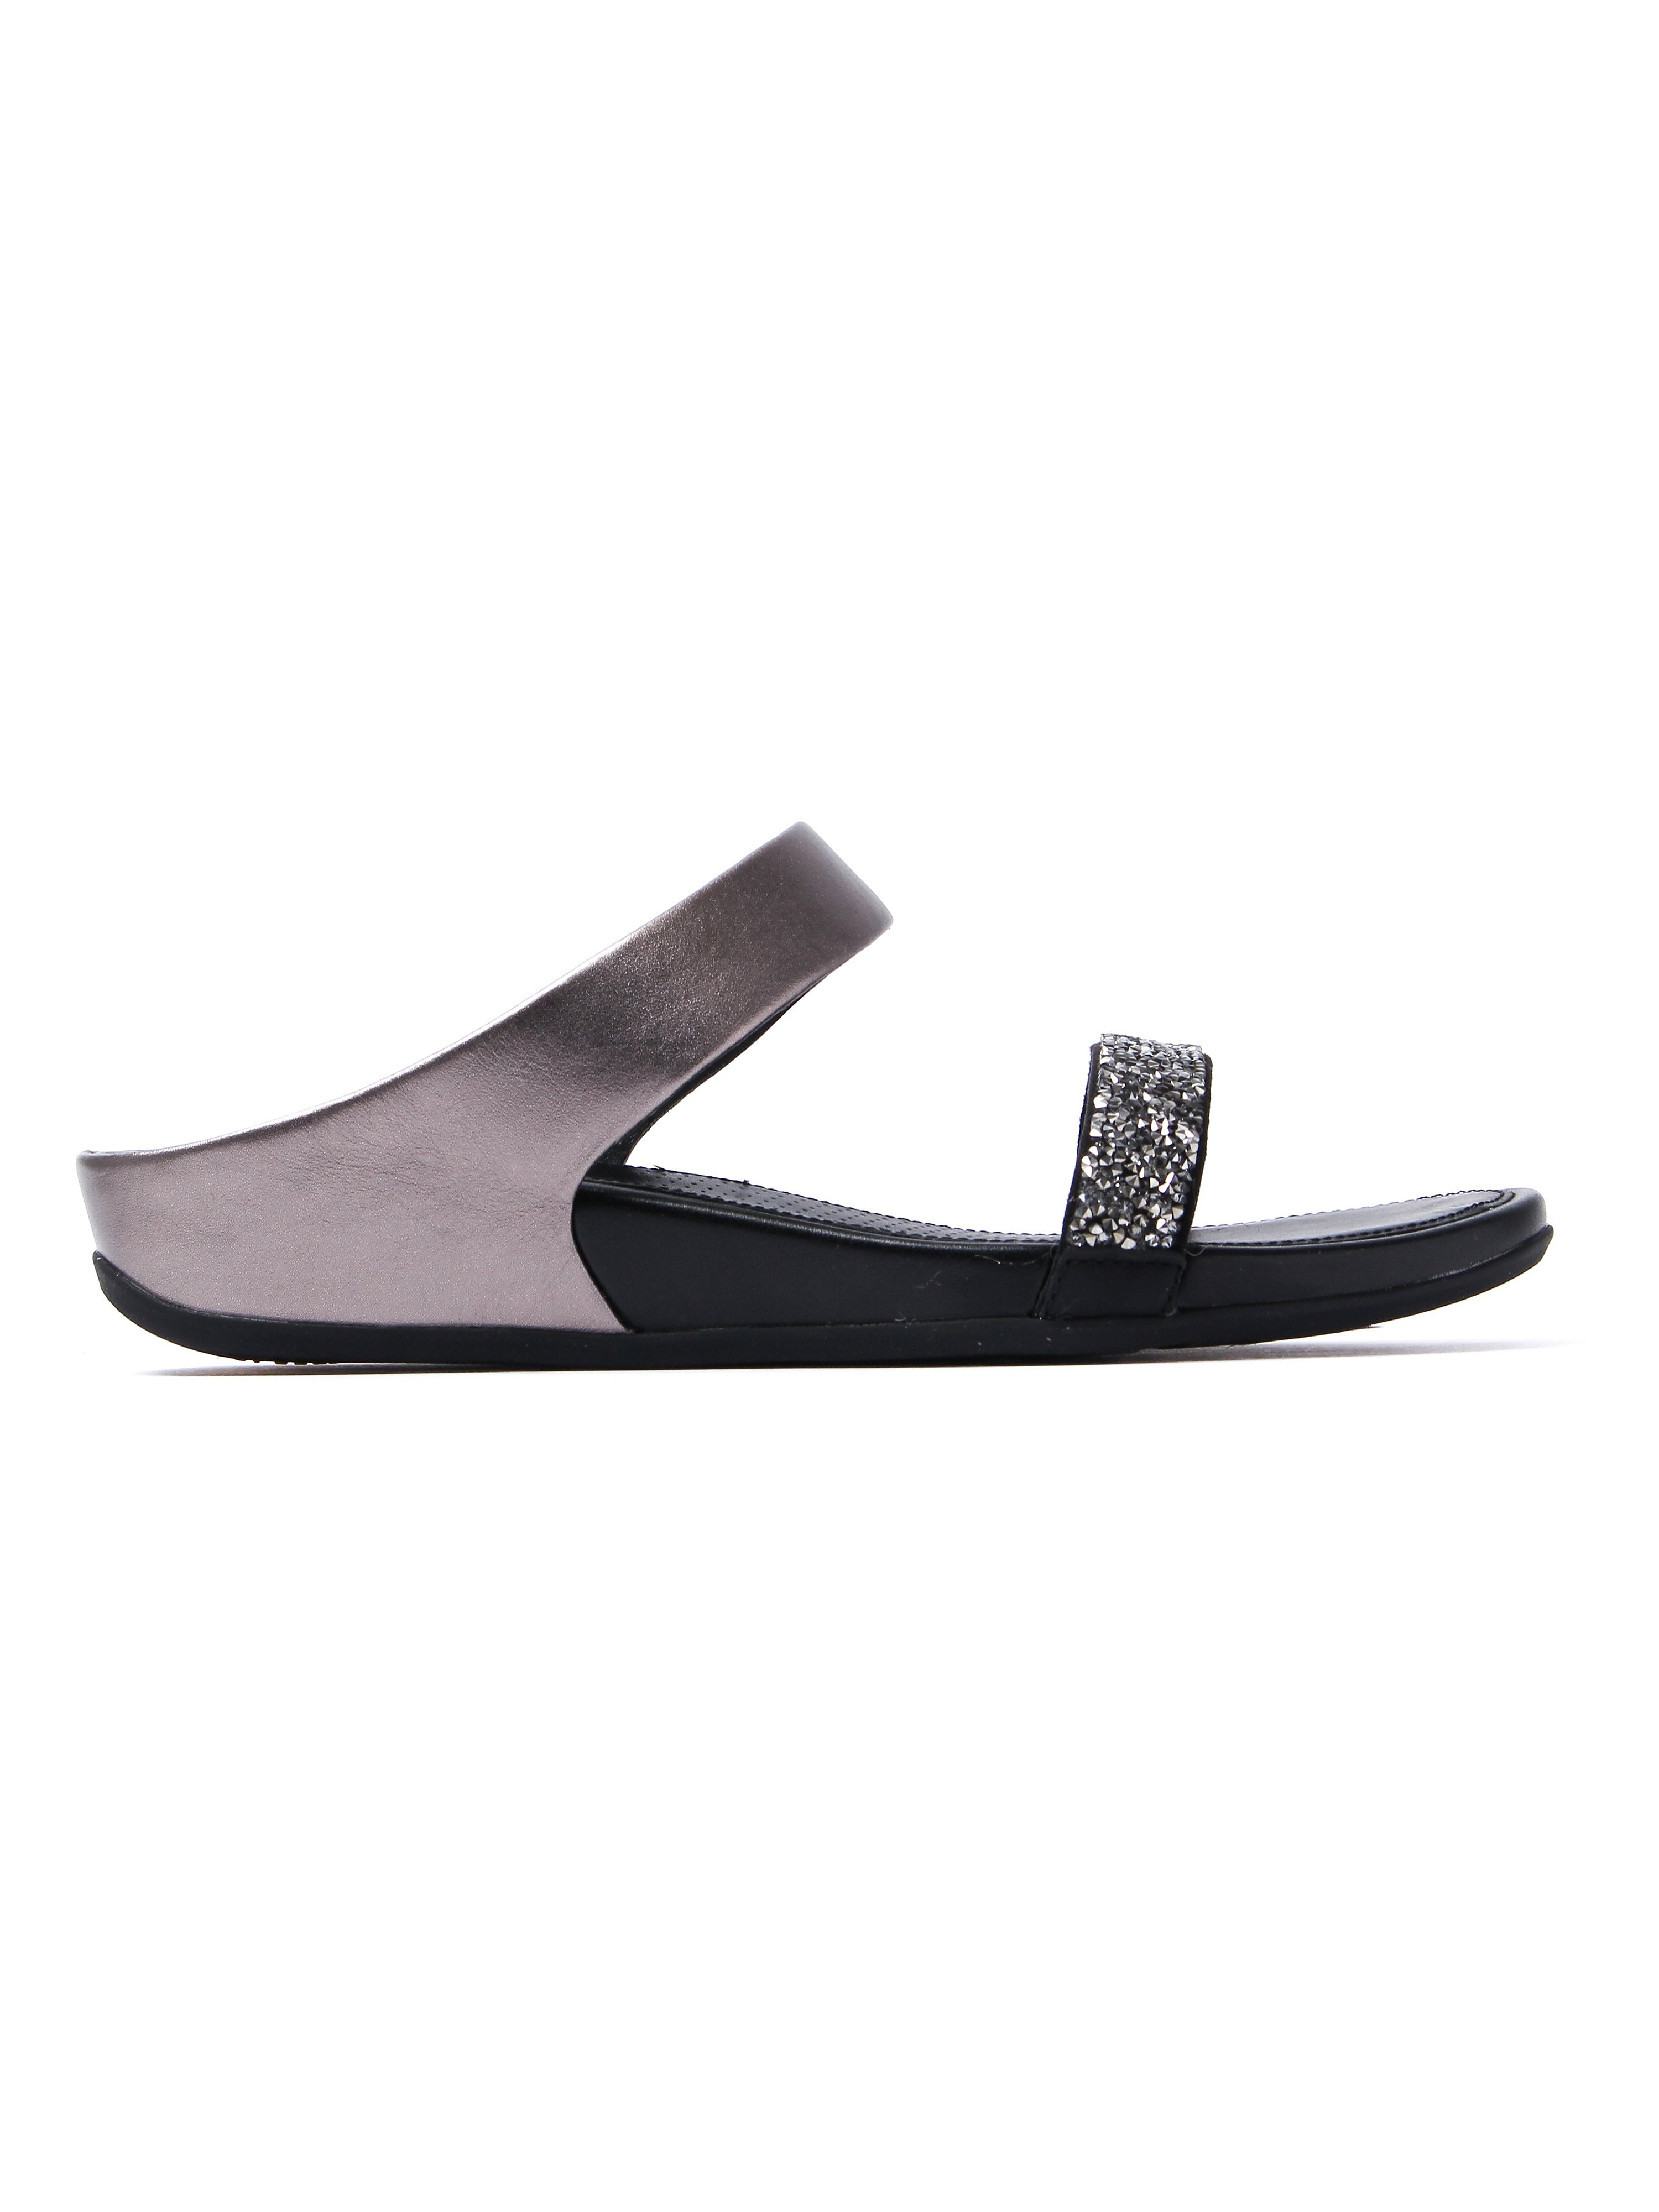 FitFlop Women's Banda Roxy Slide Sandals - Pewter